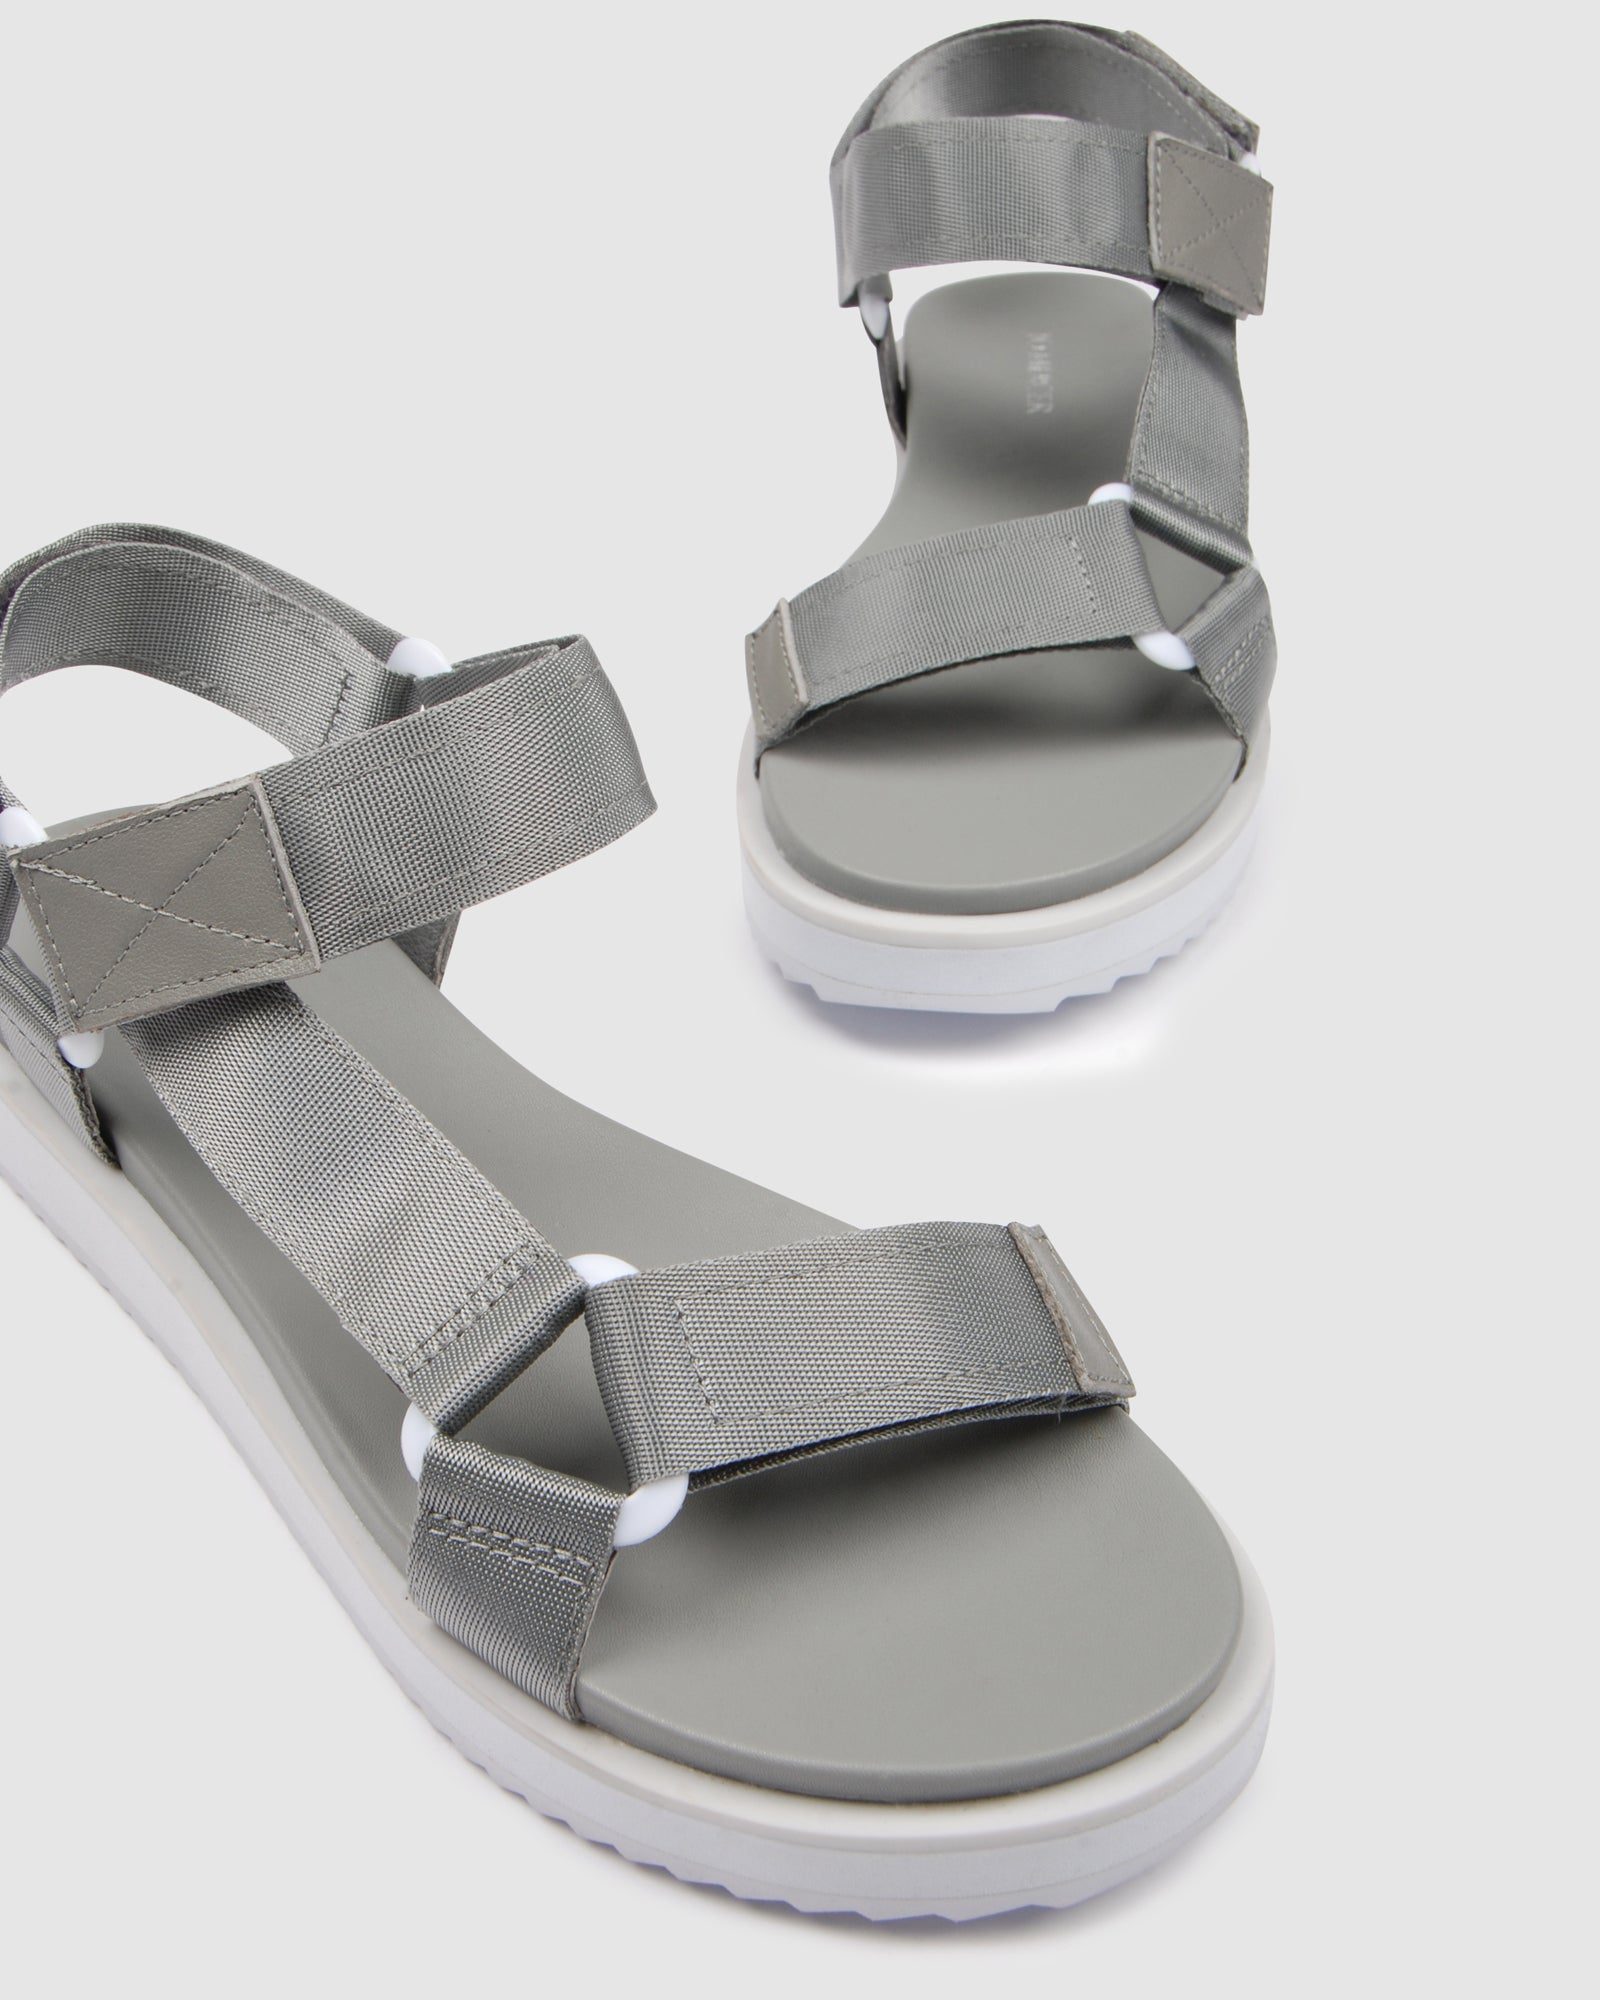 BECCA FLAT SANDALS GREY